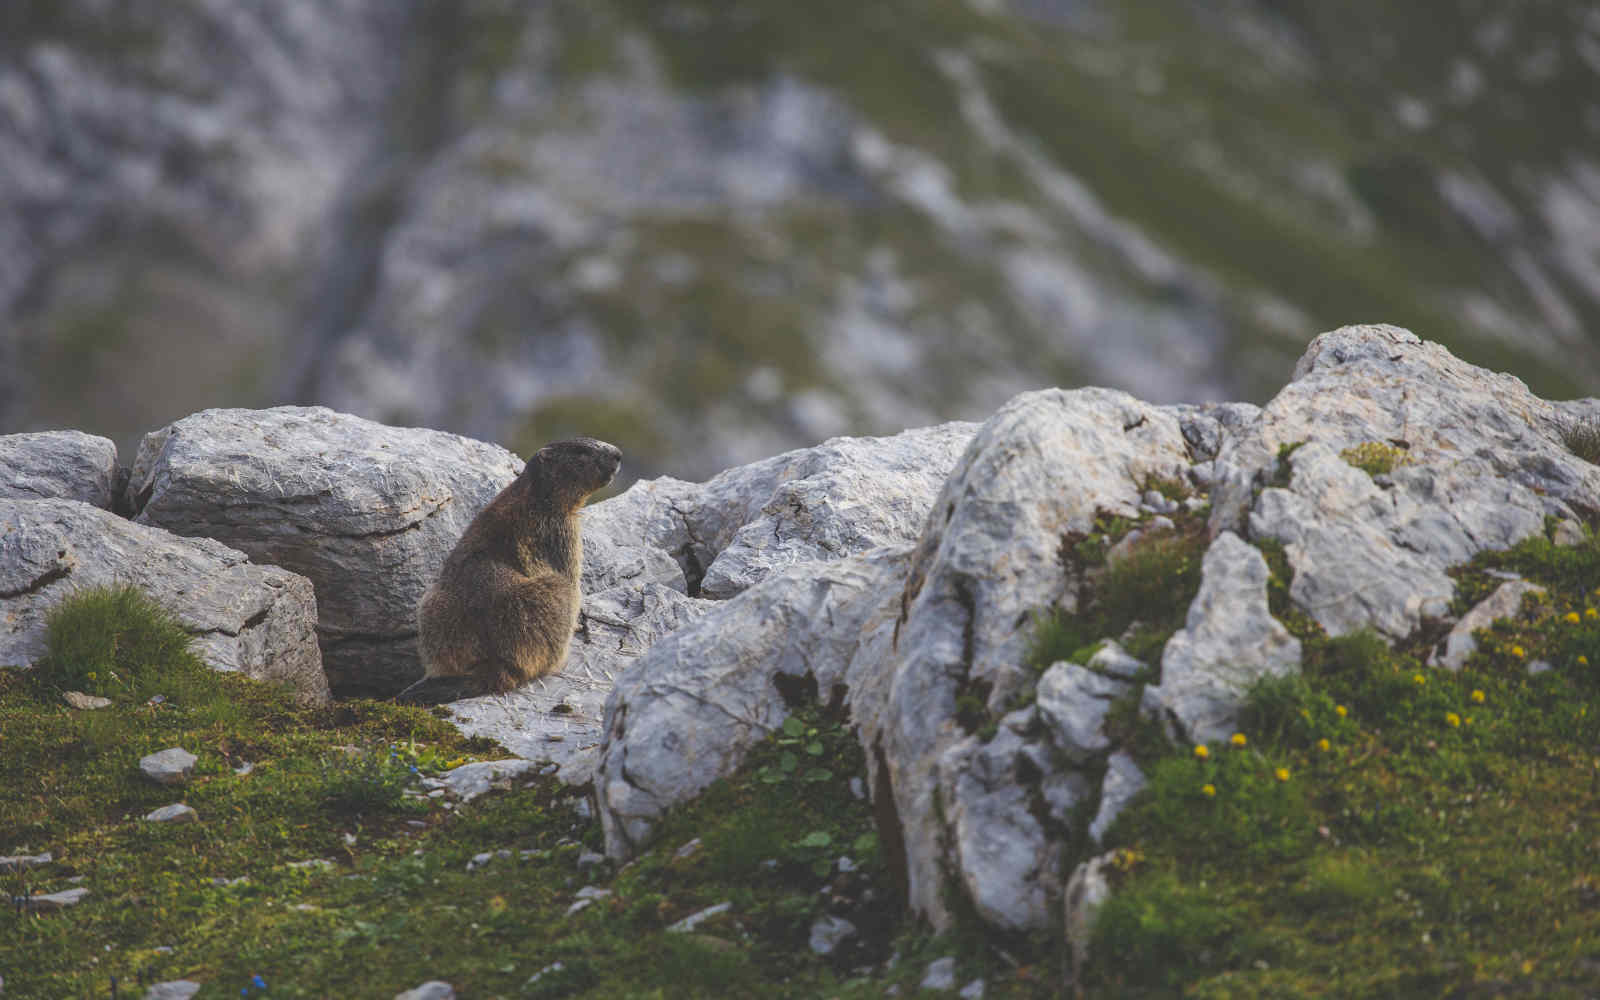 Marmottes in the French Alps when mountain biking